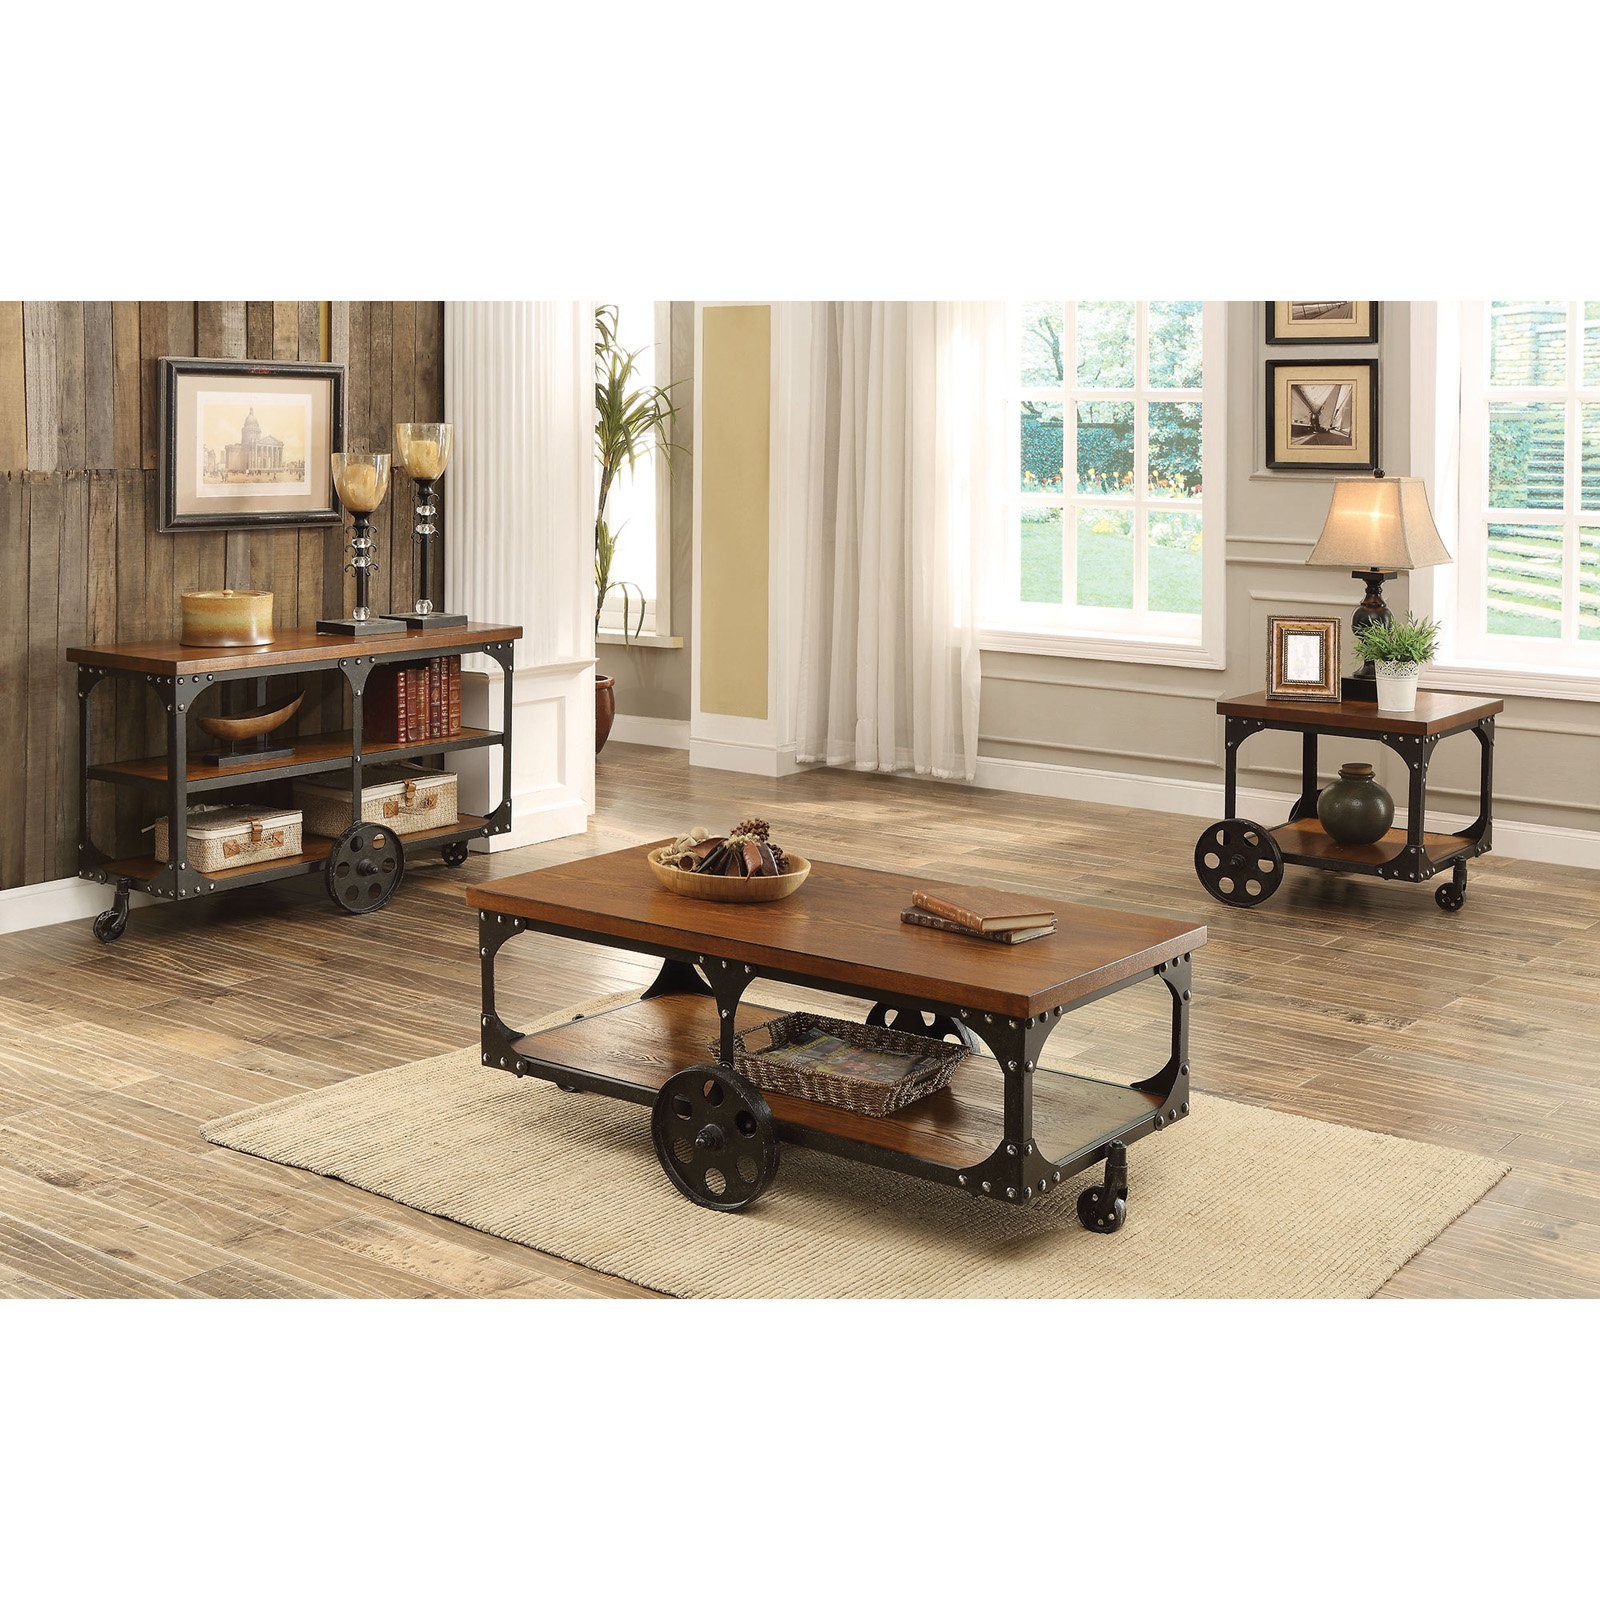 Industrial Style Solid Wooden Sofa Table With Metal Accents Wheels Brown Walmart Com Walmart Com